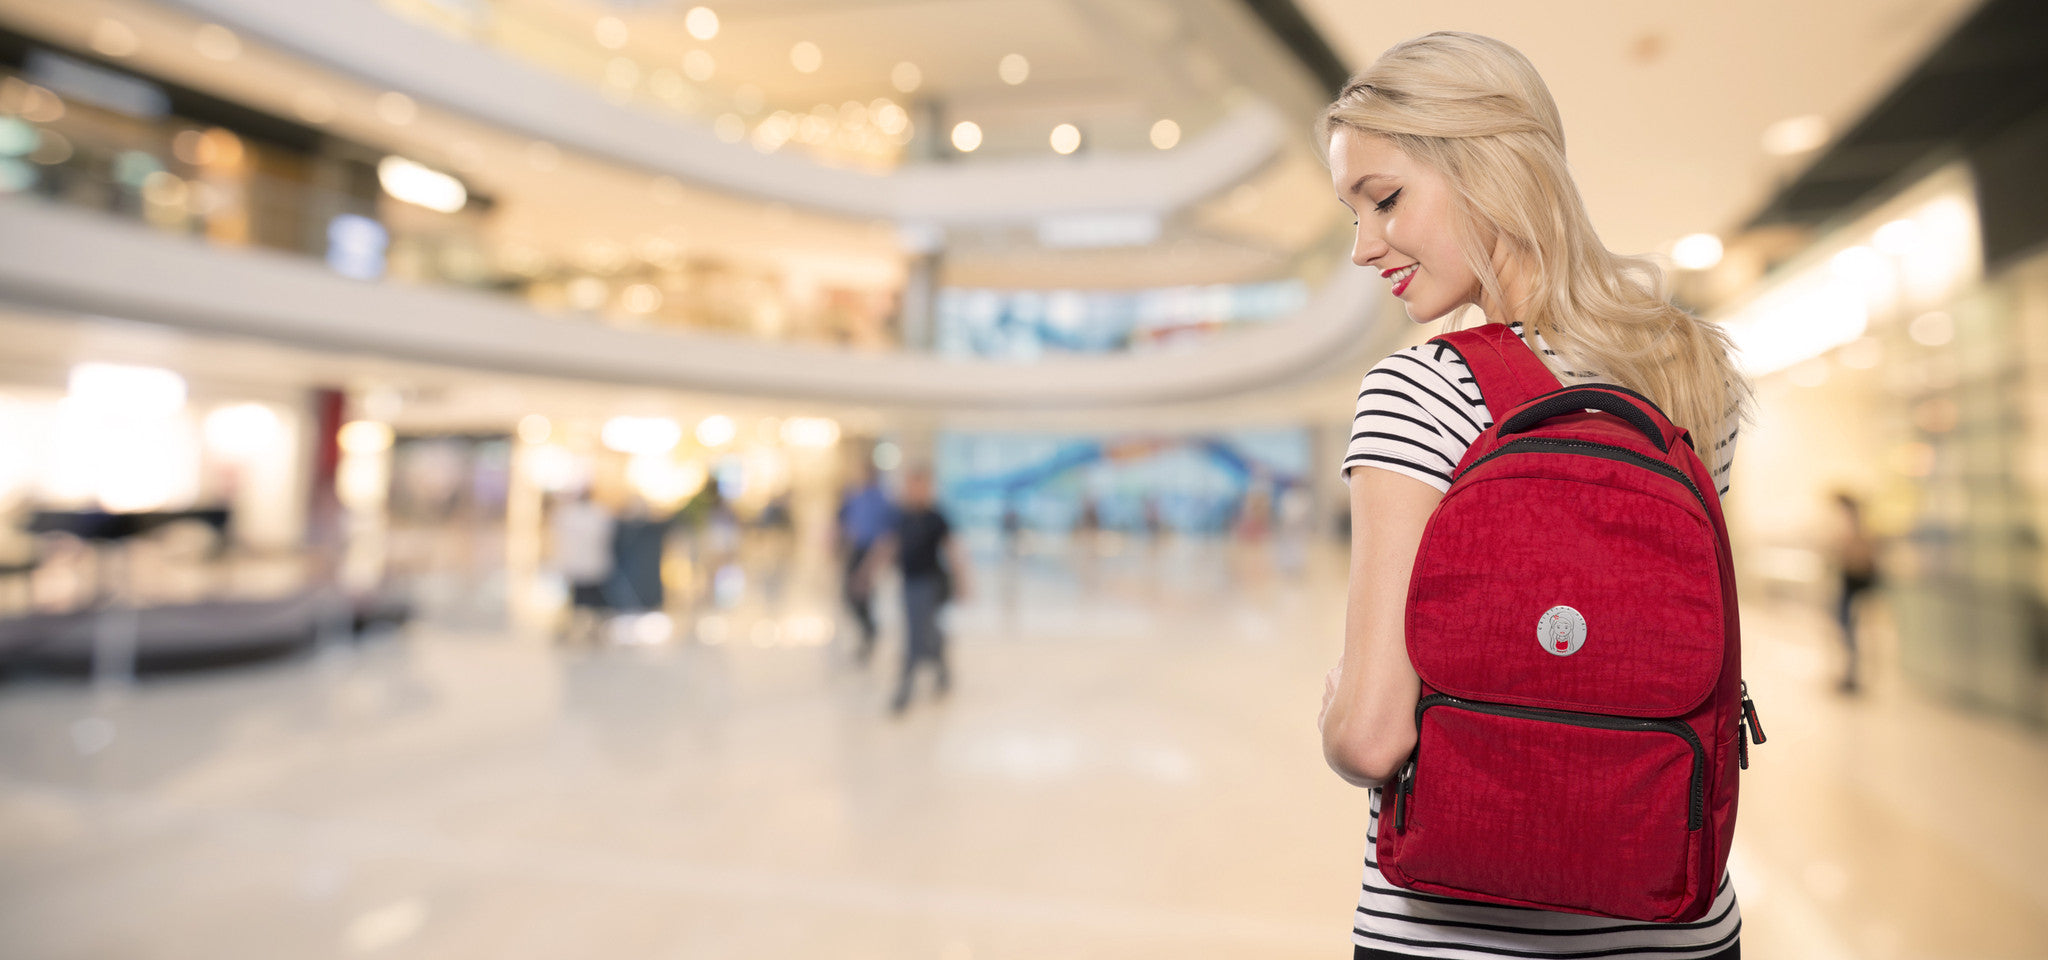 Girl carrying a Cristina Girl bag in red colour